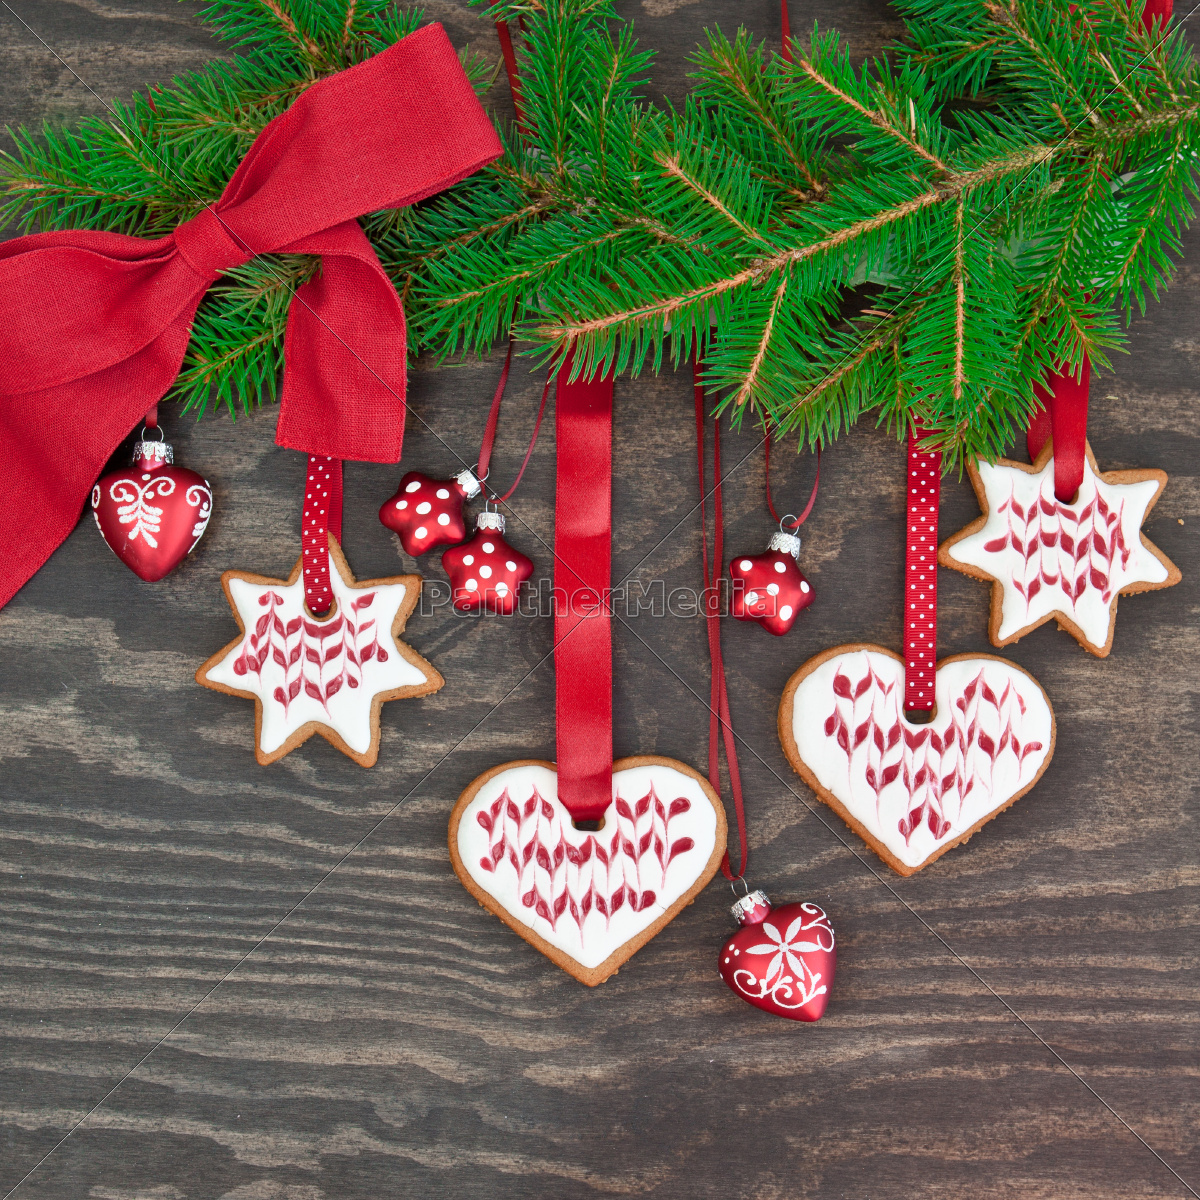 fir, branch, decorated, with, cookies - 10272841